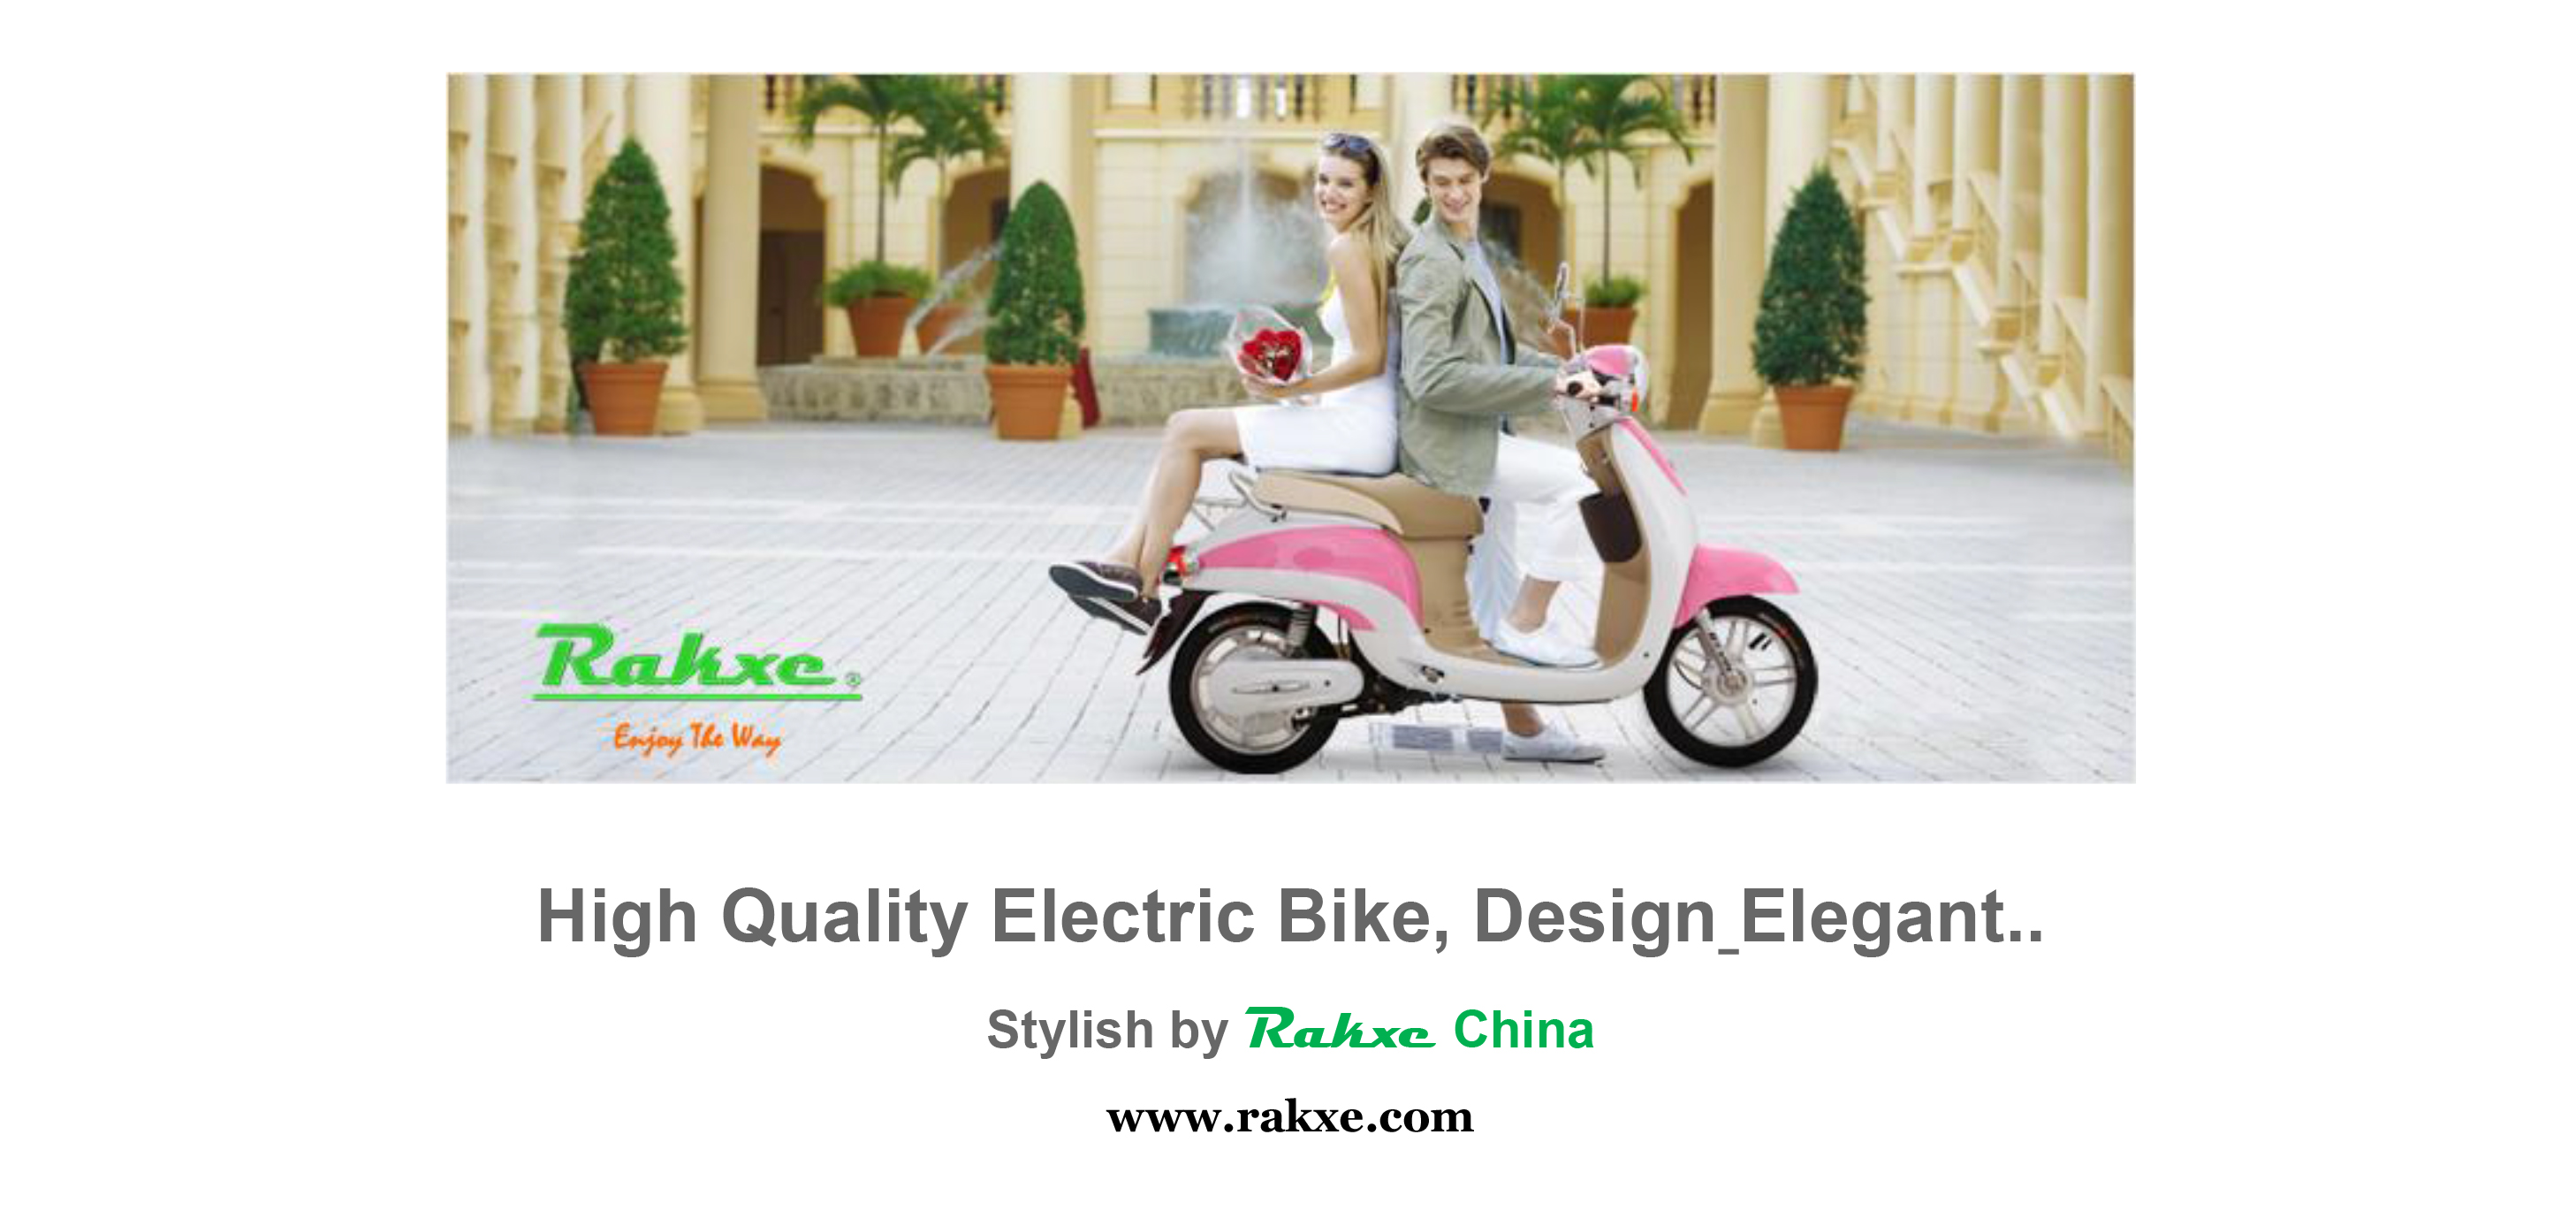 Offerring Electric Scooter, Electric Bike, Electric Bicycle, Electric Motorcycle,Electric Vehicle